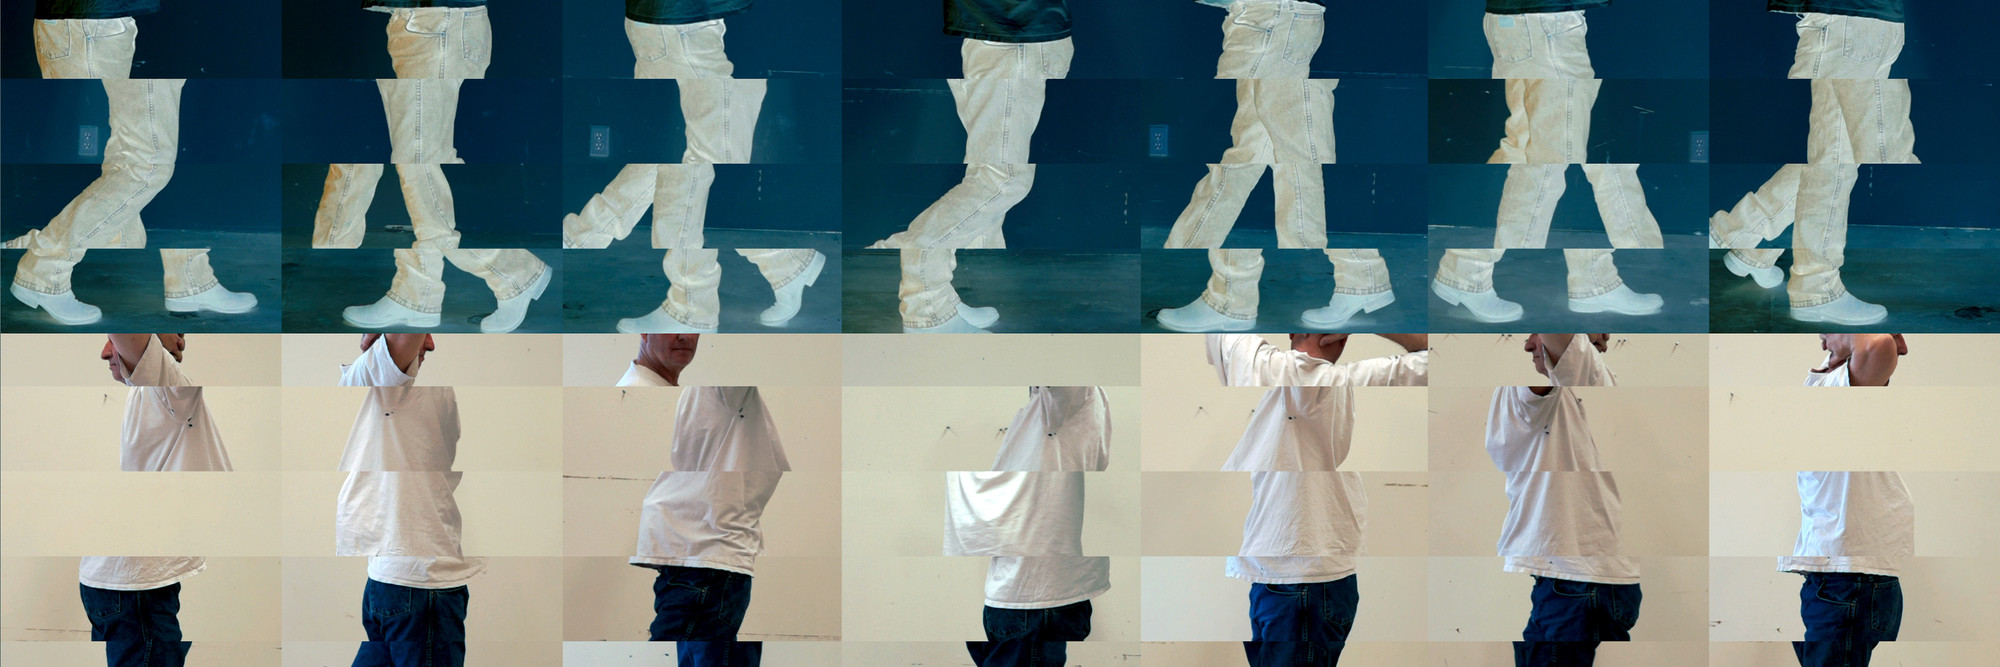 Still from <em>Contrapposto Studies, i through vii</em> (detail). 2015/16. Seven-channel video. Jointly owned by The Museum of Modern Art, New York, acquired in part through the generosity of Agnes Gund and Jo Carole and Ronald S. Lauder; and Emanuel Hoffmann Foundation, gift of the president 2017, on permanent loan to Öffentliche Kunstsammlung Basel. © 2018 Bruce Nauman/Artists Rights Society (ARS), New York